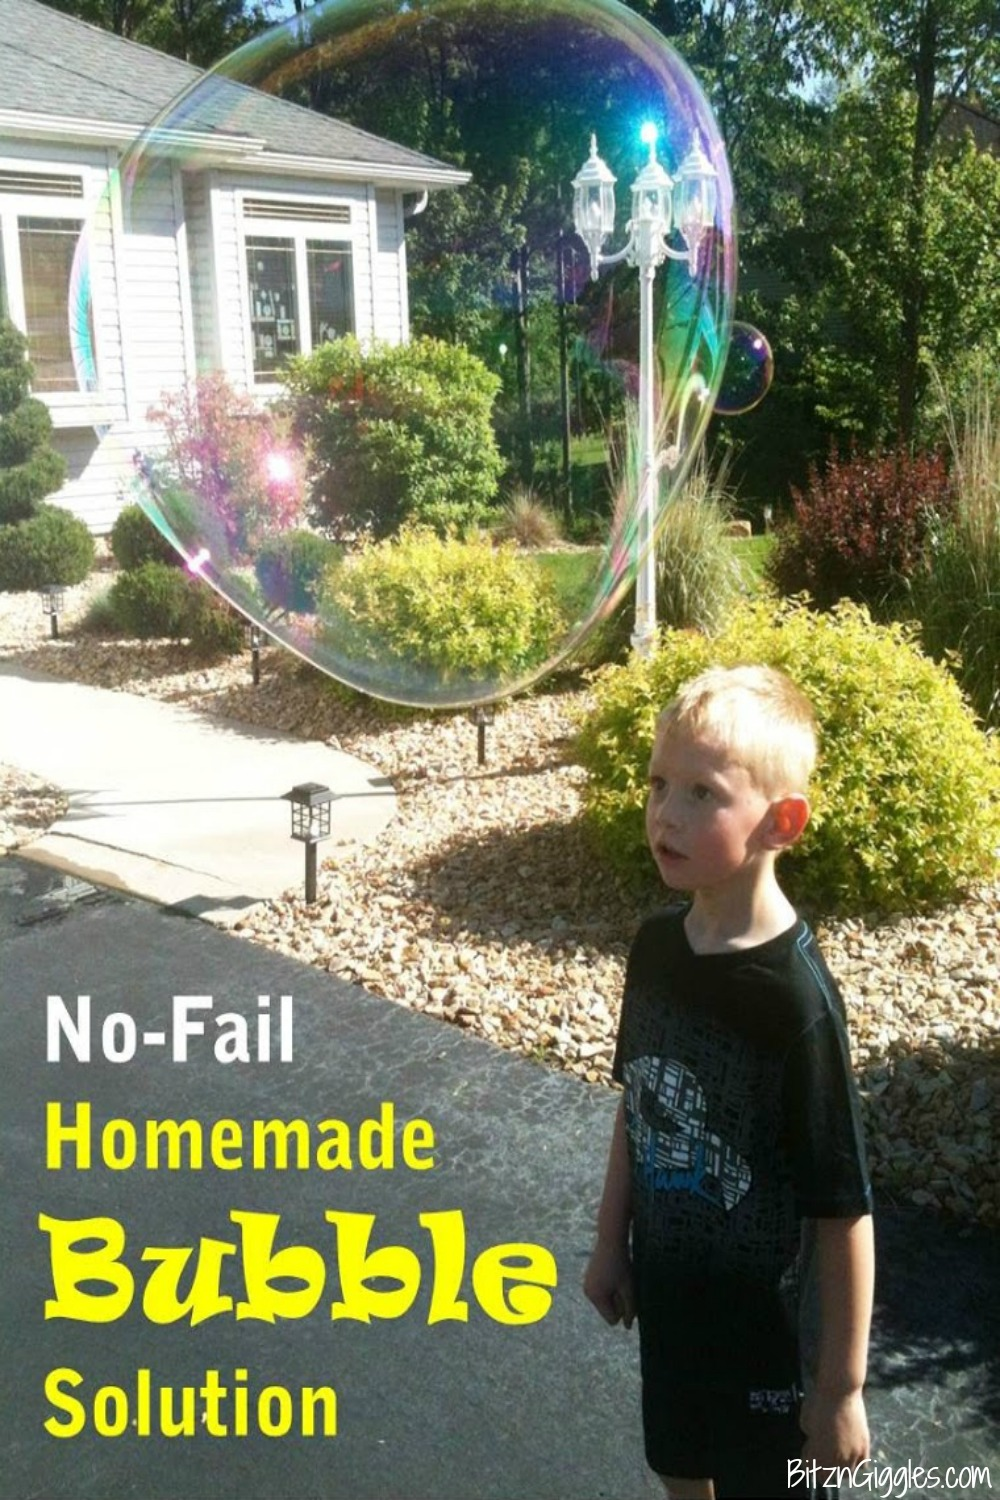 No Fail Homemade Bubble Solution - The easiest homemade solution to make the biggest bubbles ever!